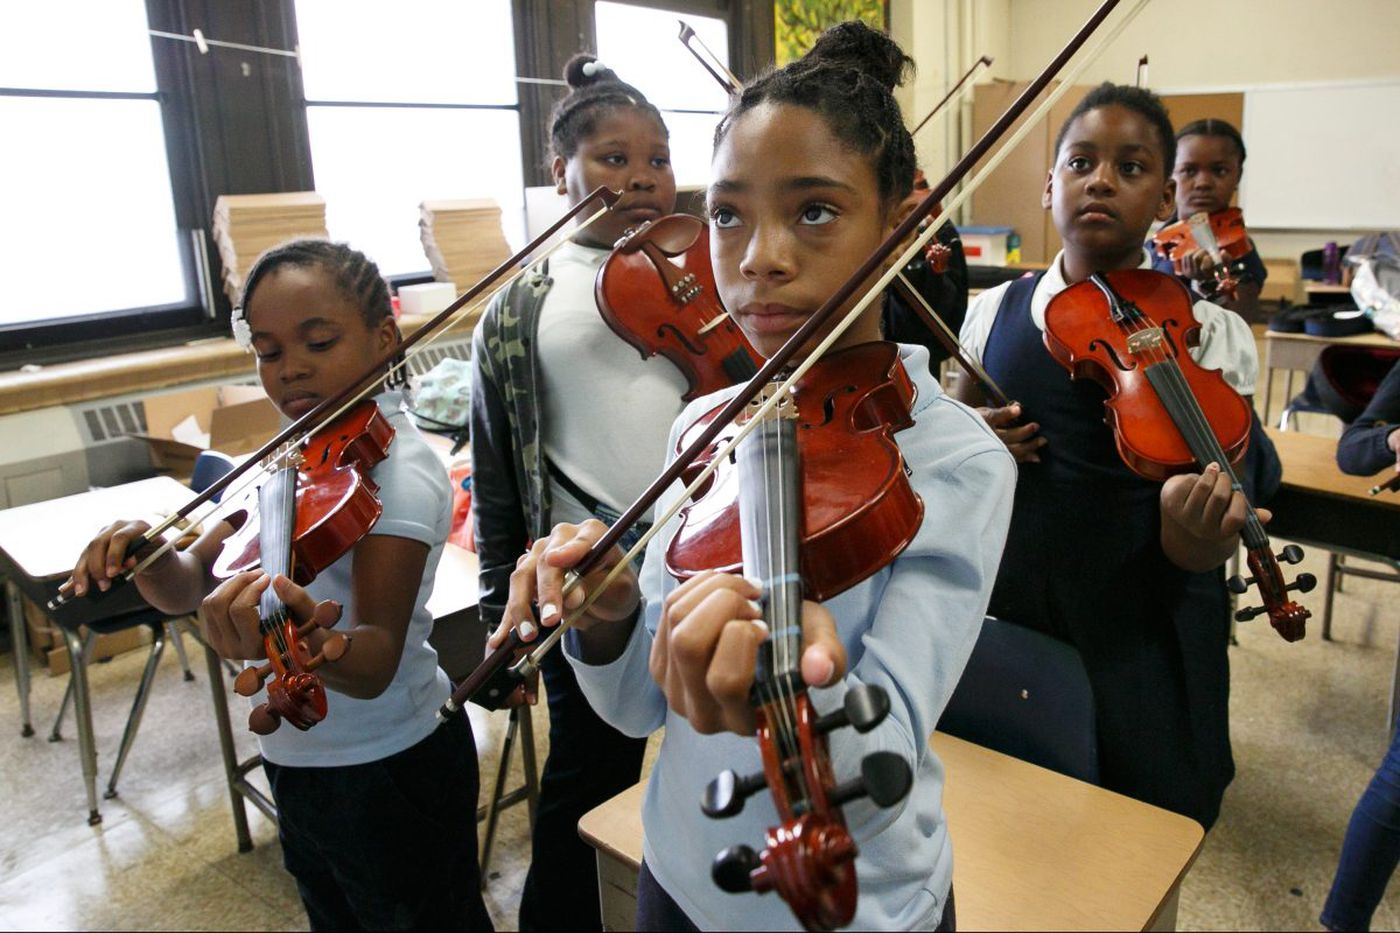 Some Philly schools have rich arts programs, and others have none. How do you fix it?